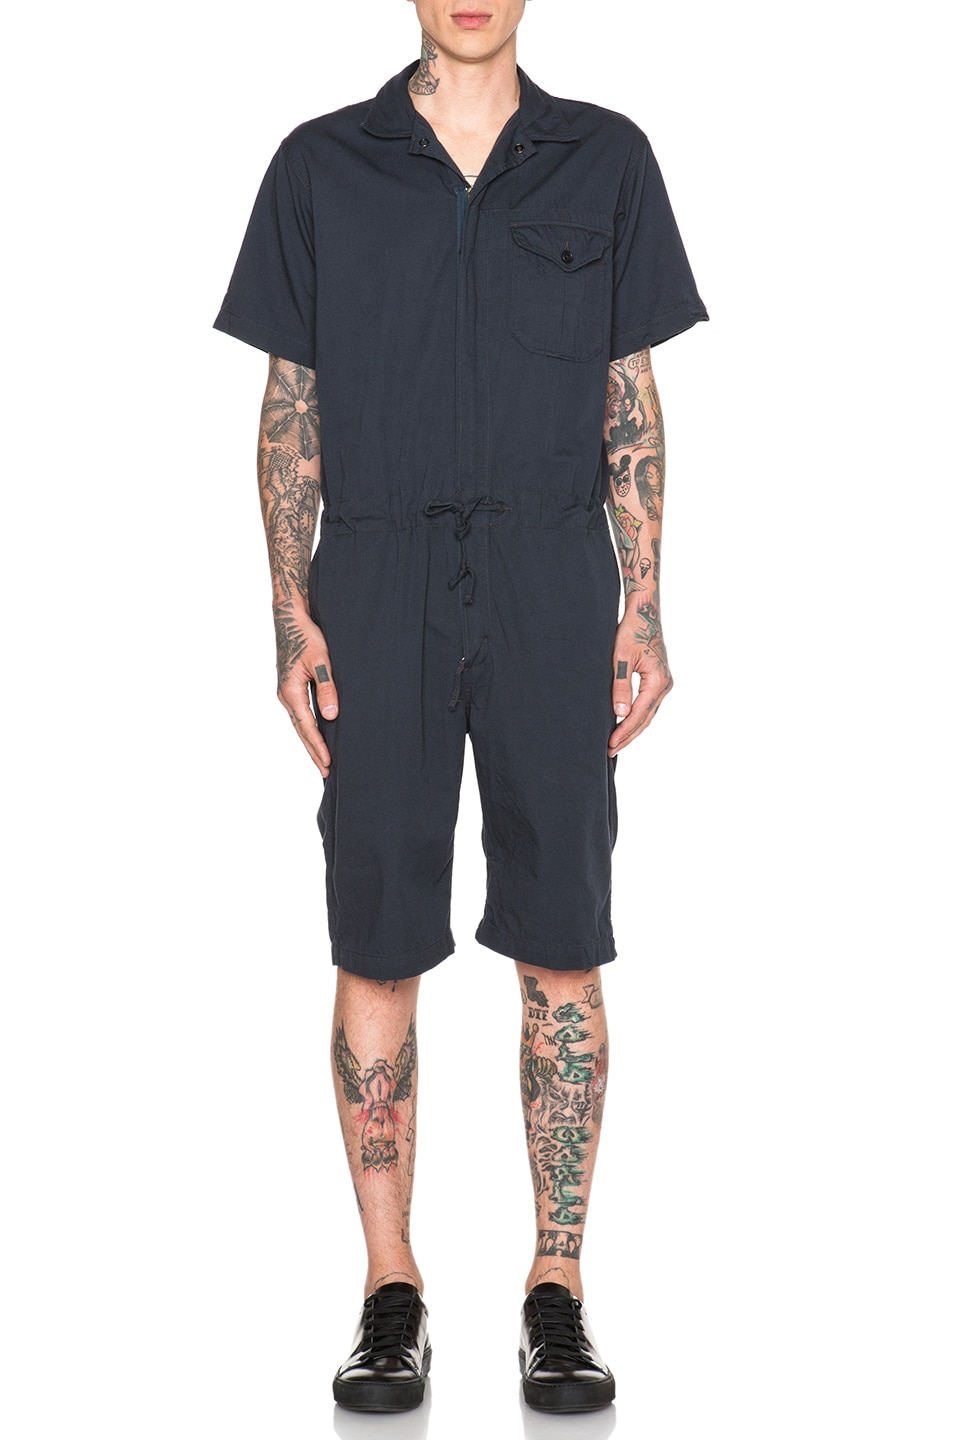 Image 1 of Engineered Garments Combi Suit in Dark Navy